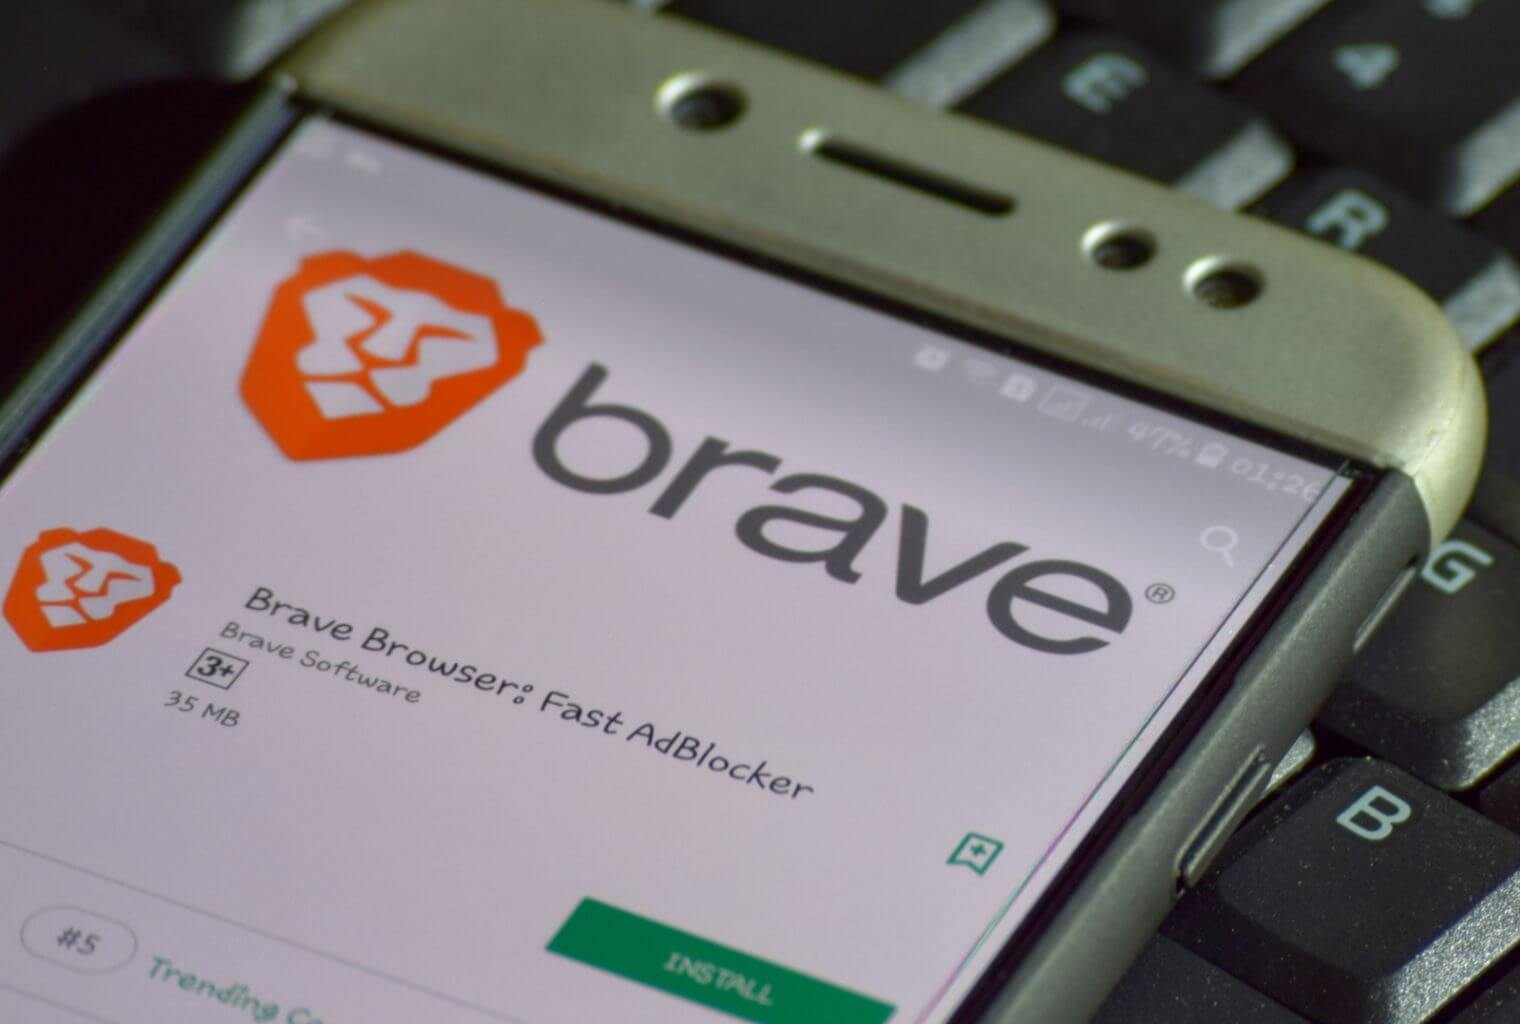 Brave takes aim at Google with privacy-protecting search engine beta